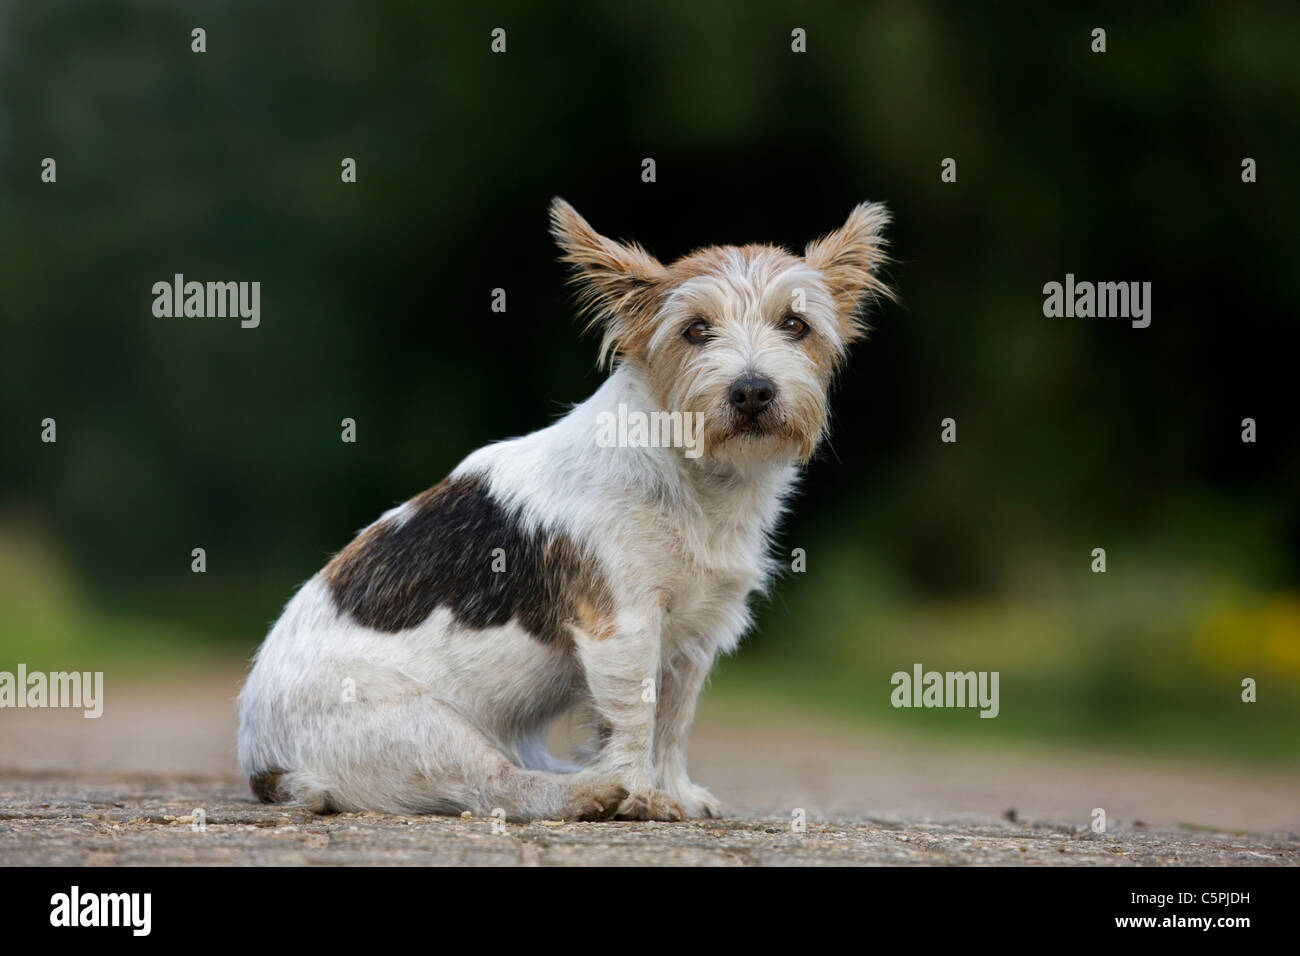 Rough-coated Jack Russell Terrier (Canis lupus familiaris) assis sur le chemin Photo Stock